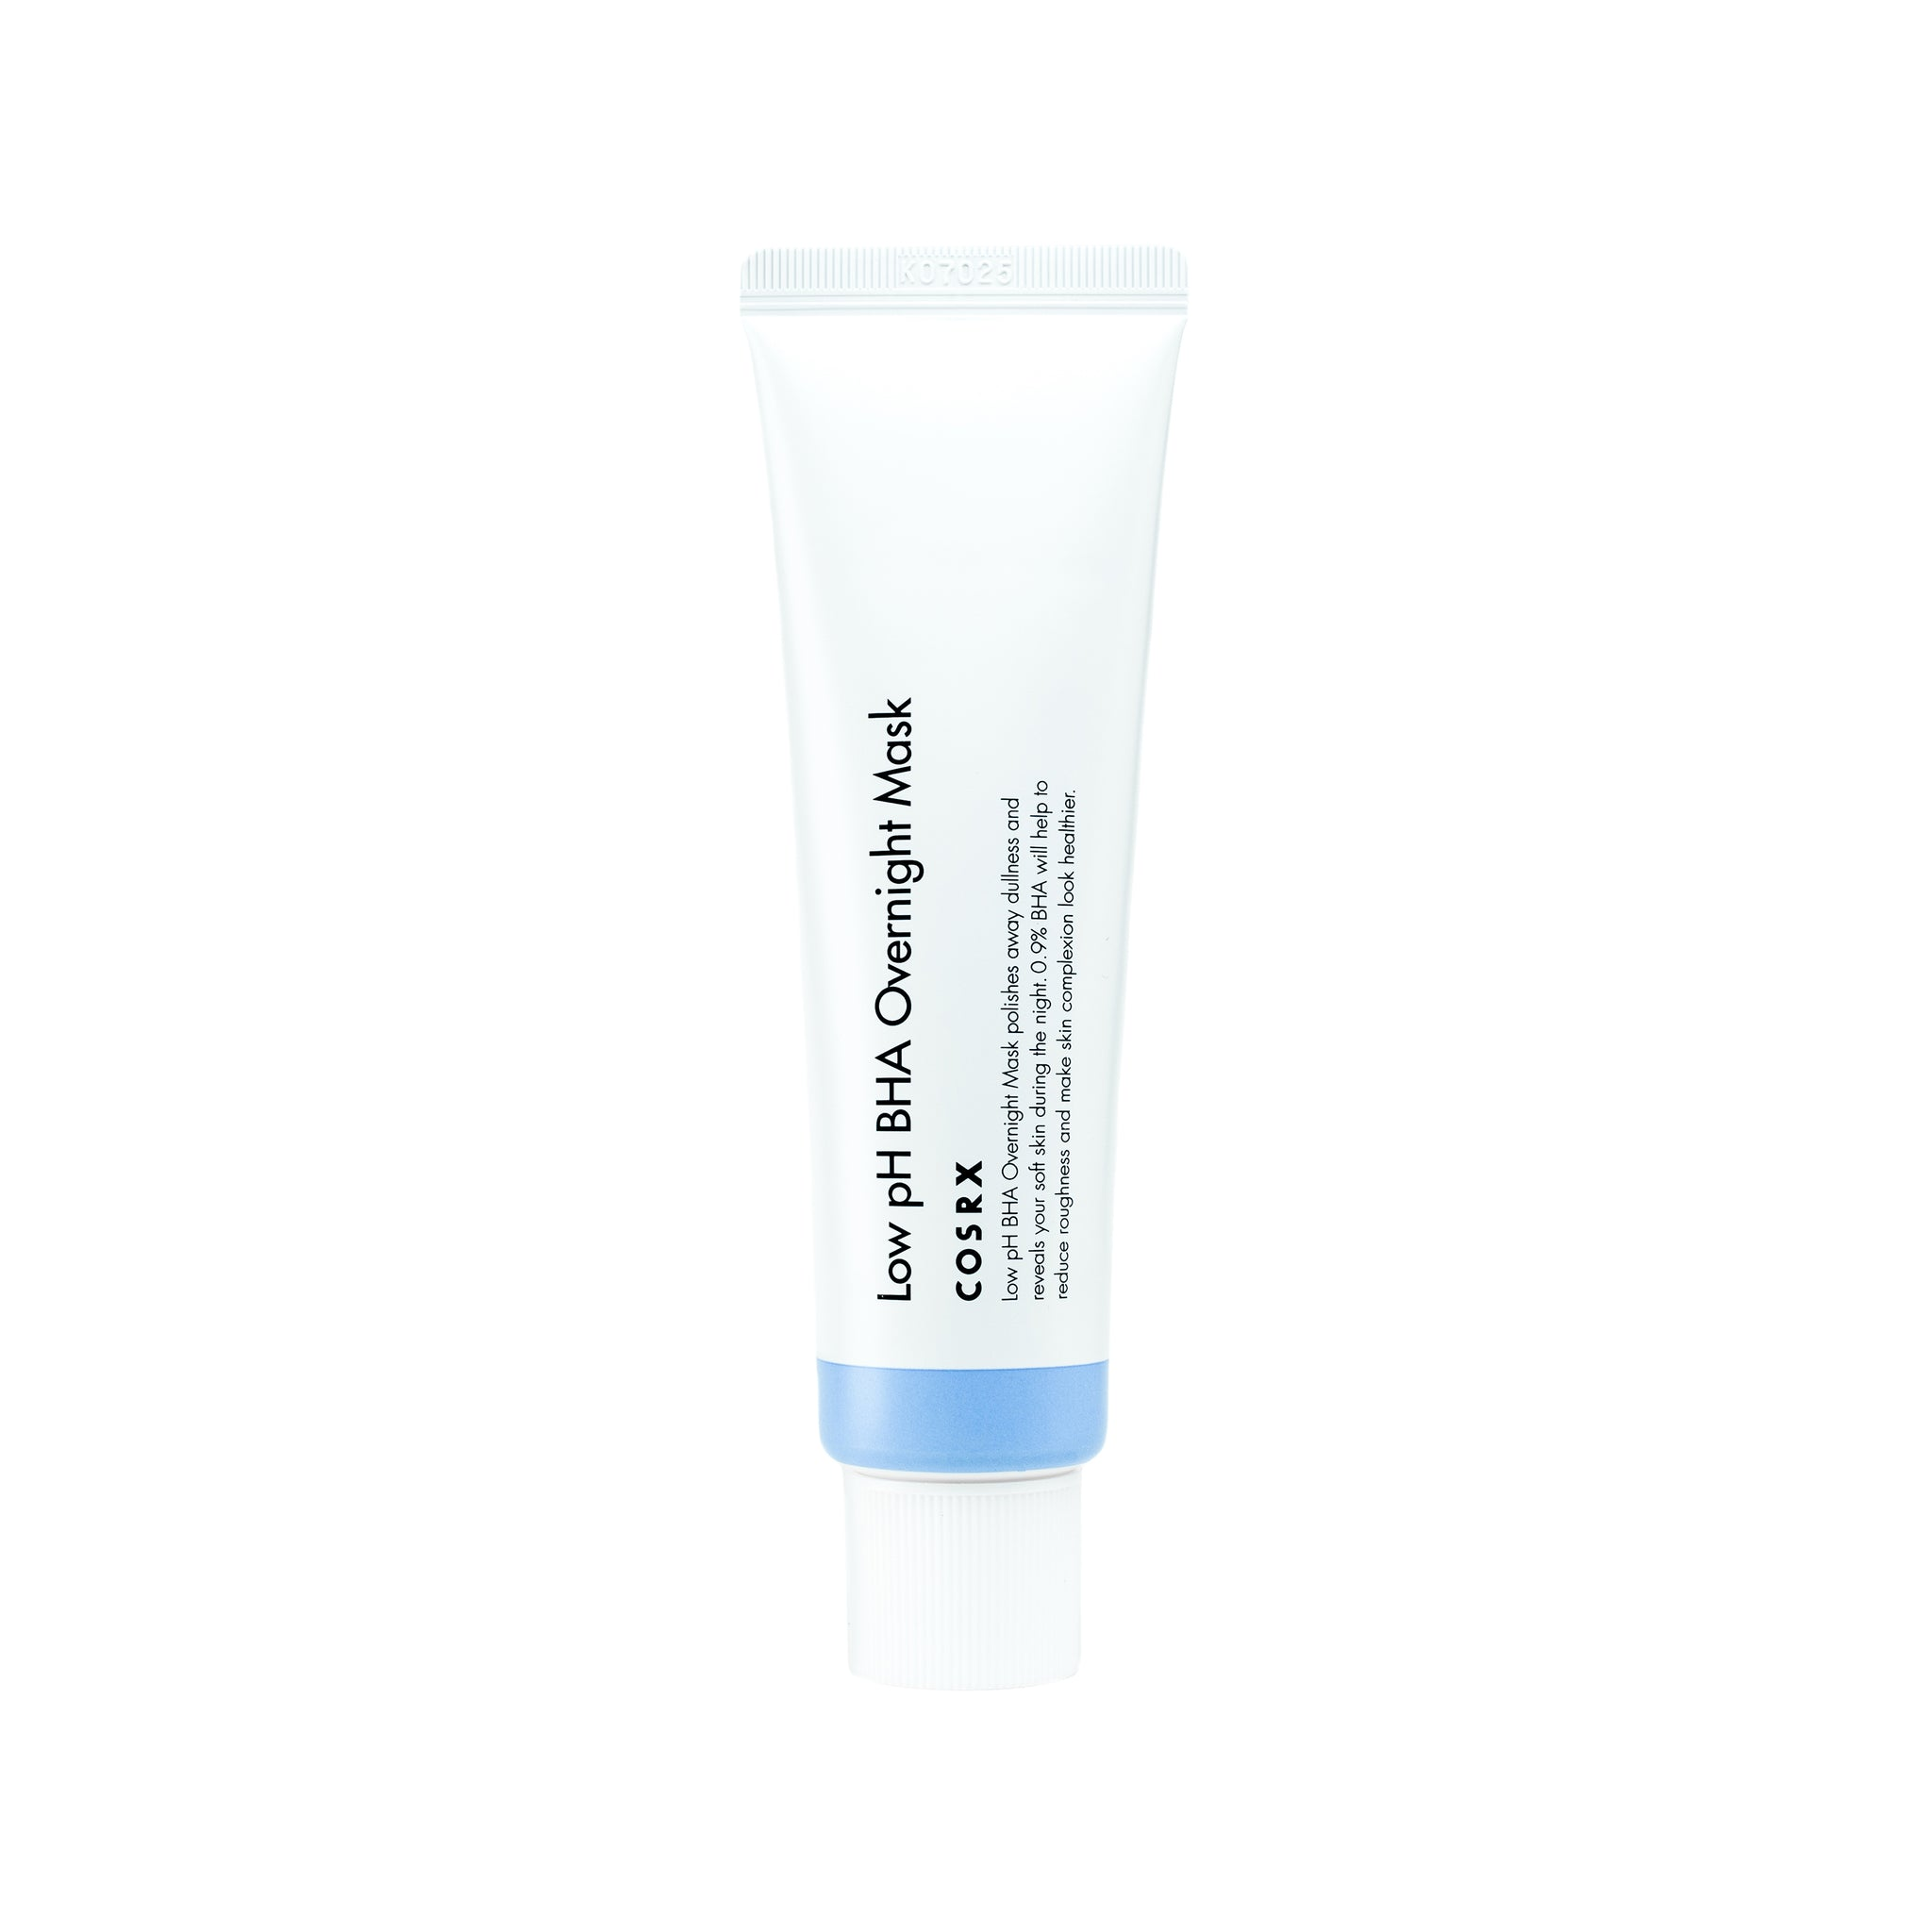 COSRX low pH BHA Overnight Mask Front